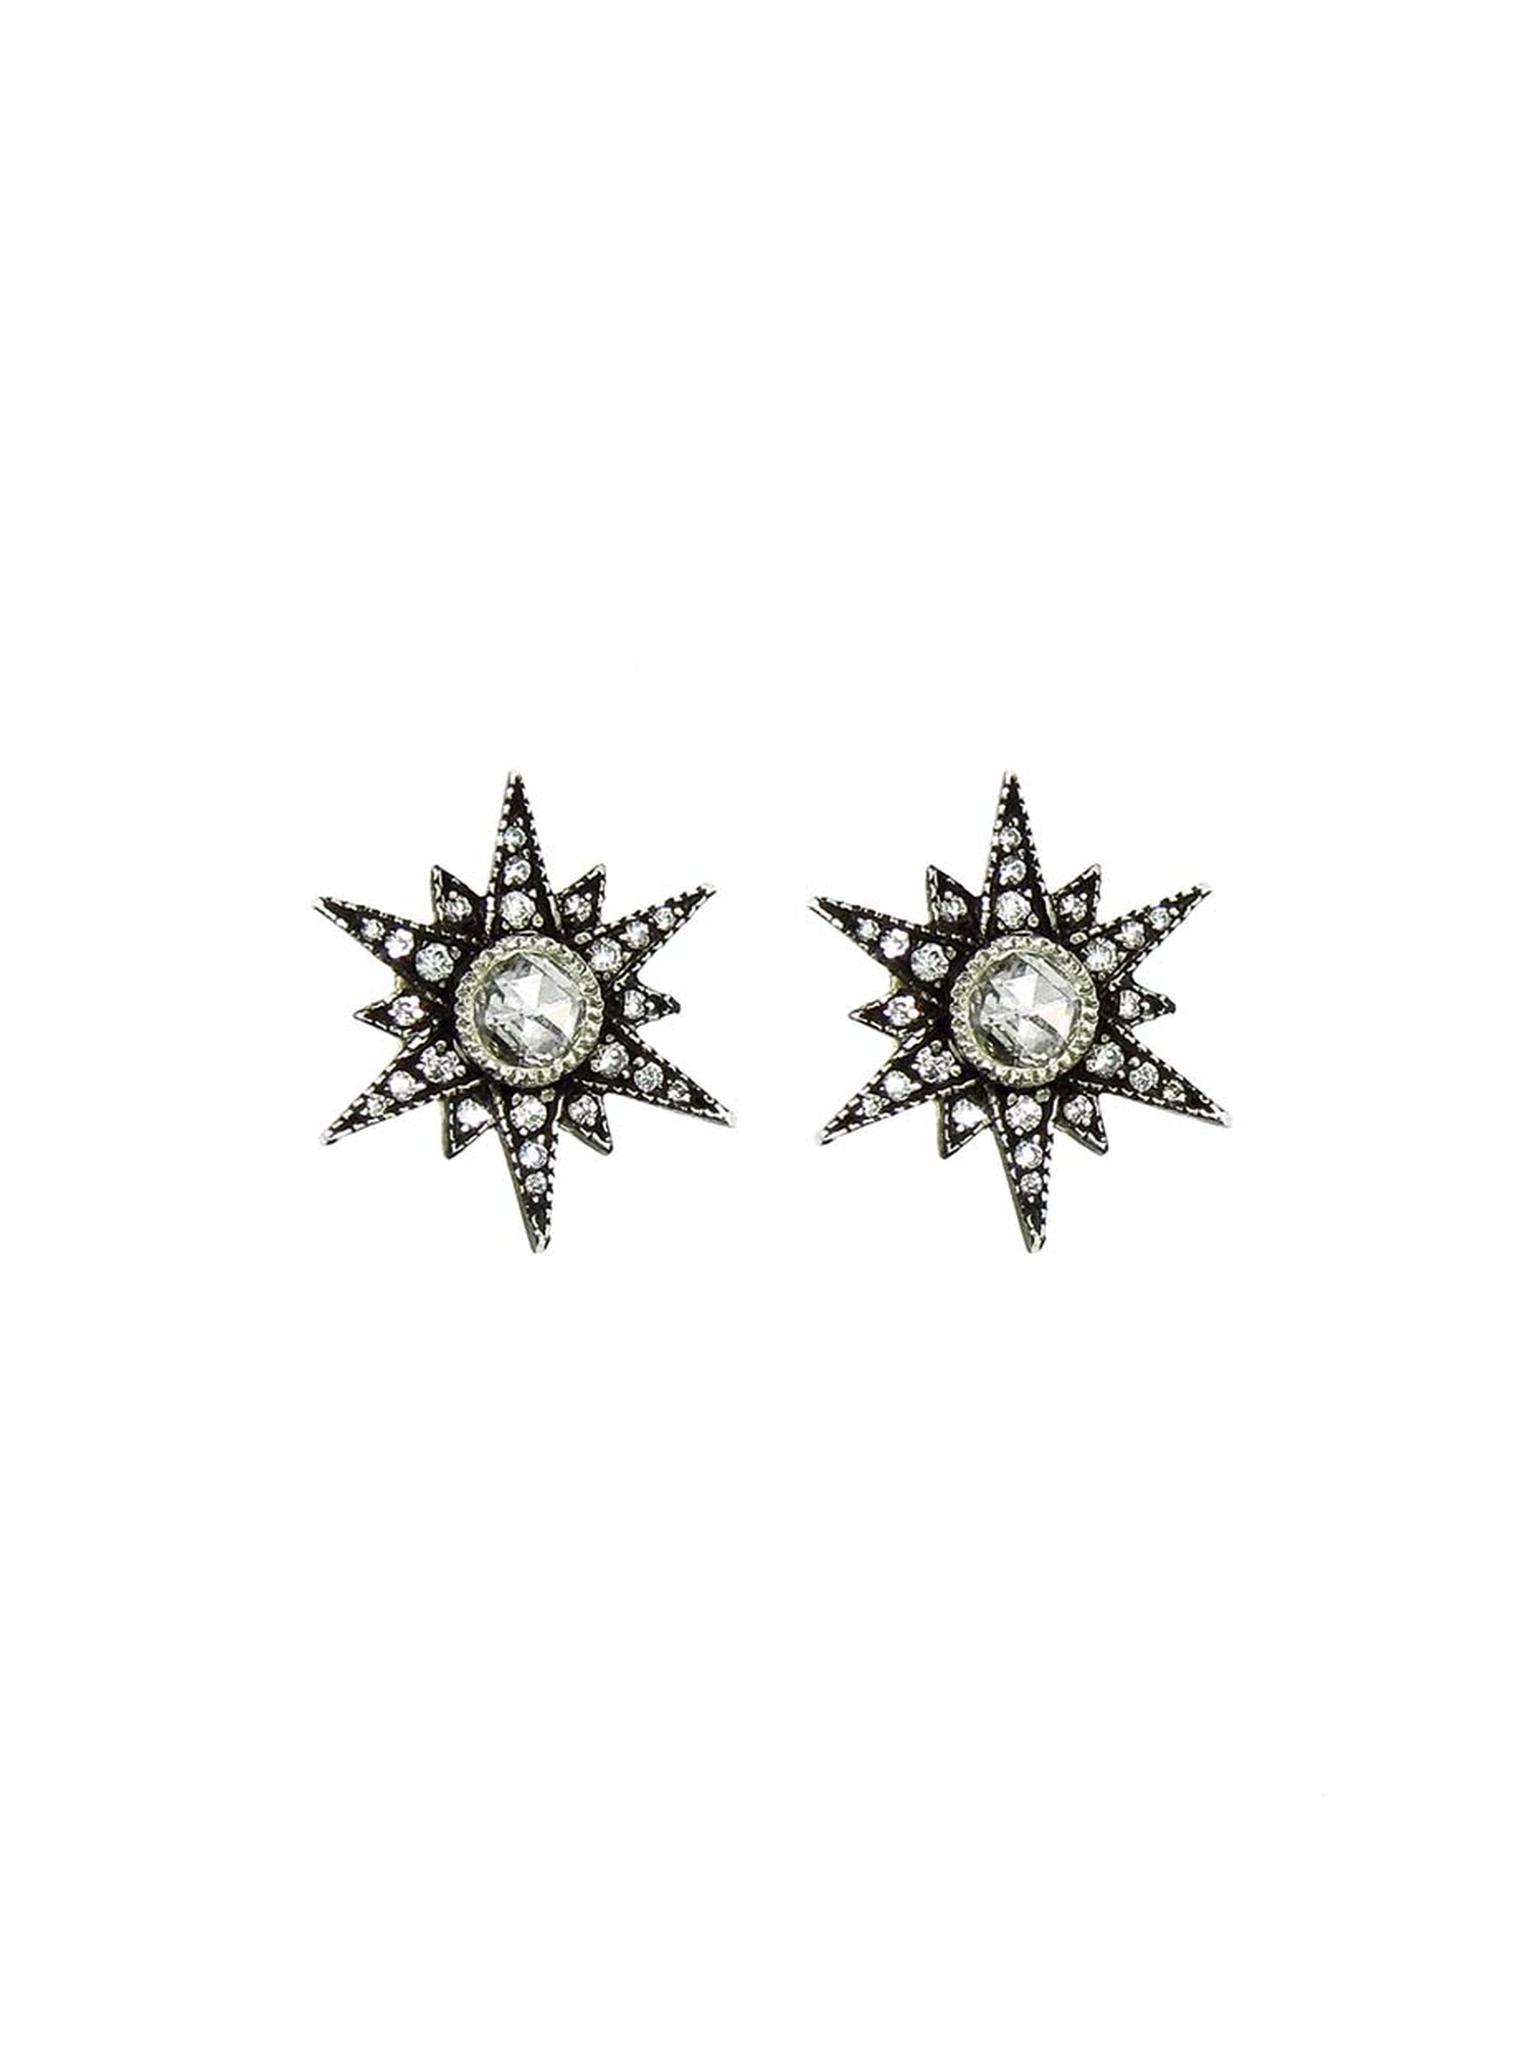 Arman Sarkisyan rose-cut diamond Star stud earrings ($4,070).